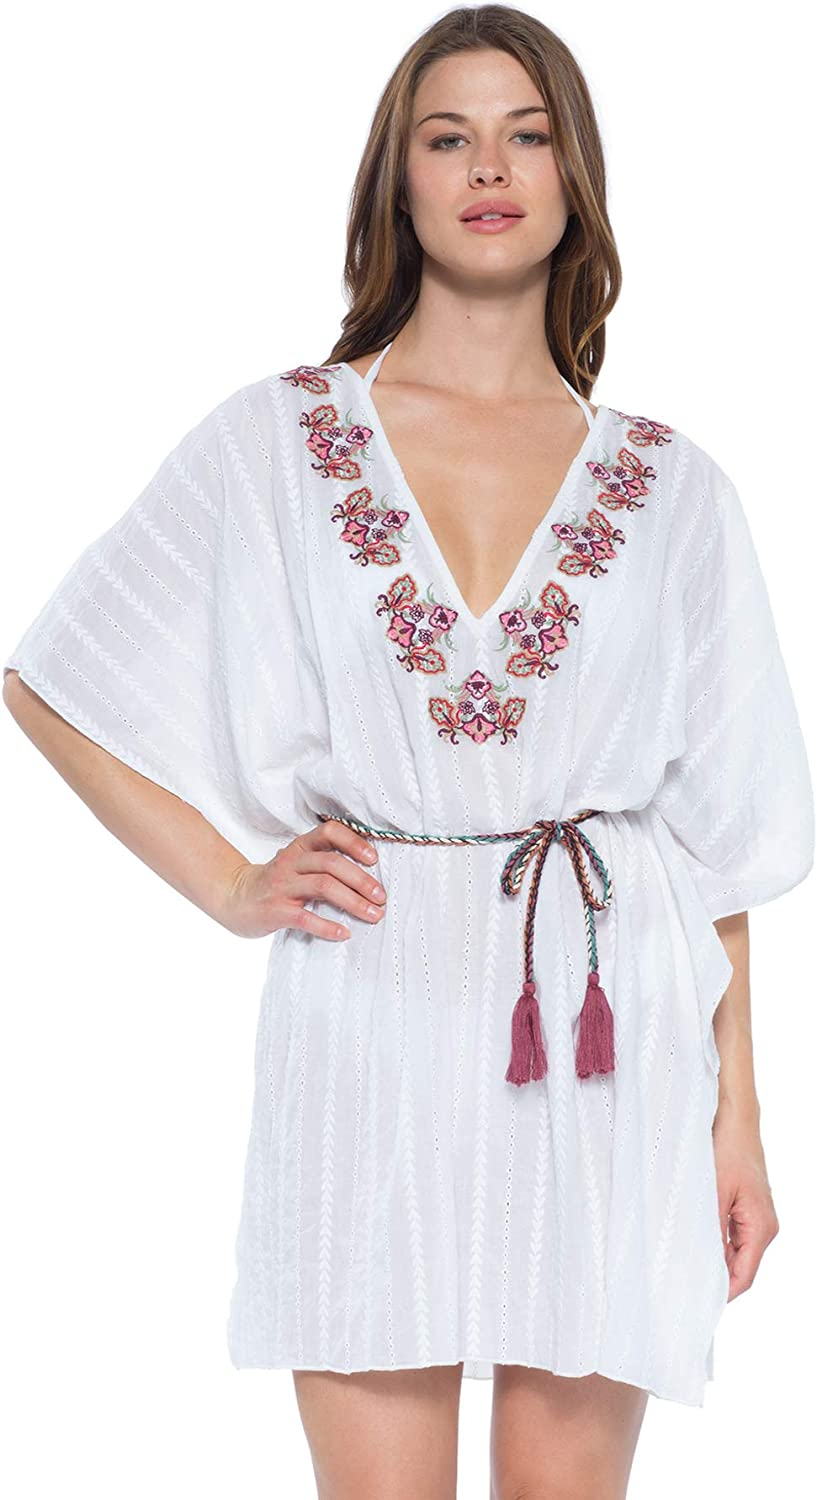 Becca by Rebecca Virtue Women's Embroidered VNeck Tunic Swim Cover Up